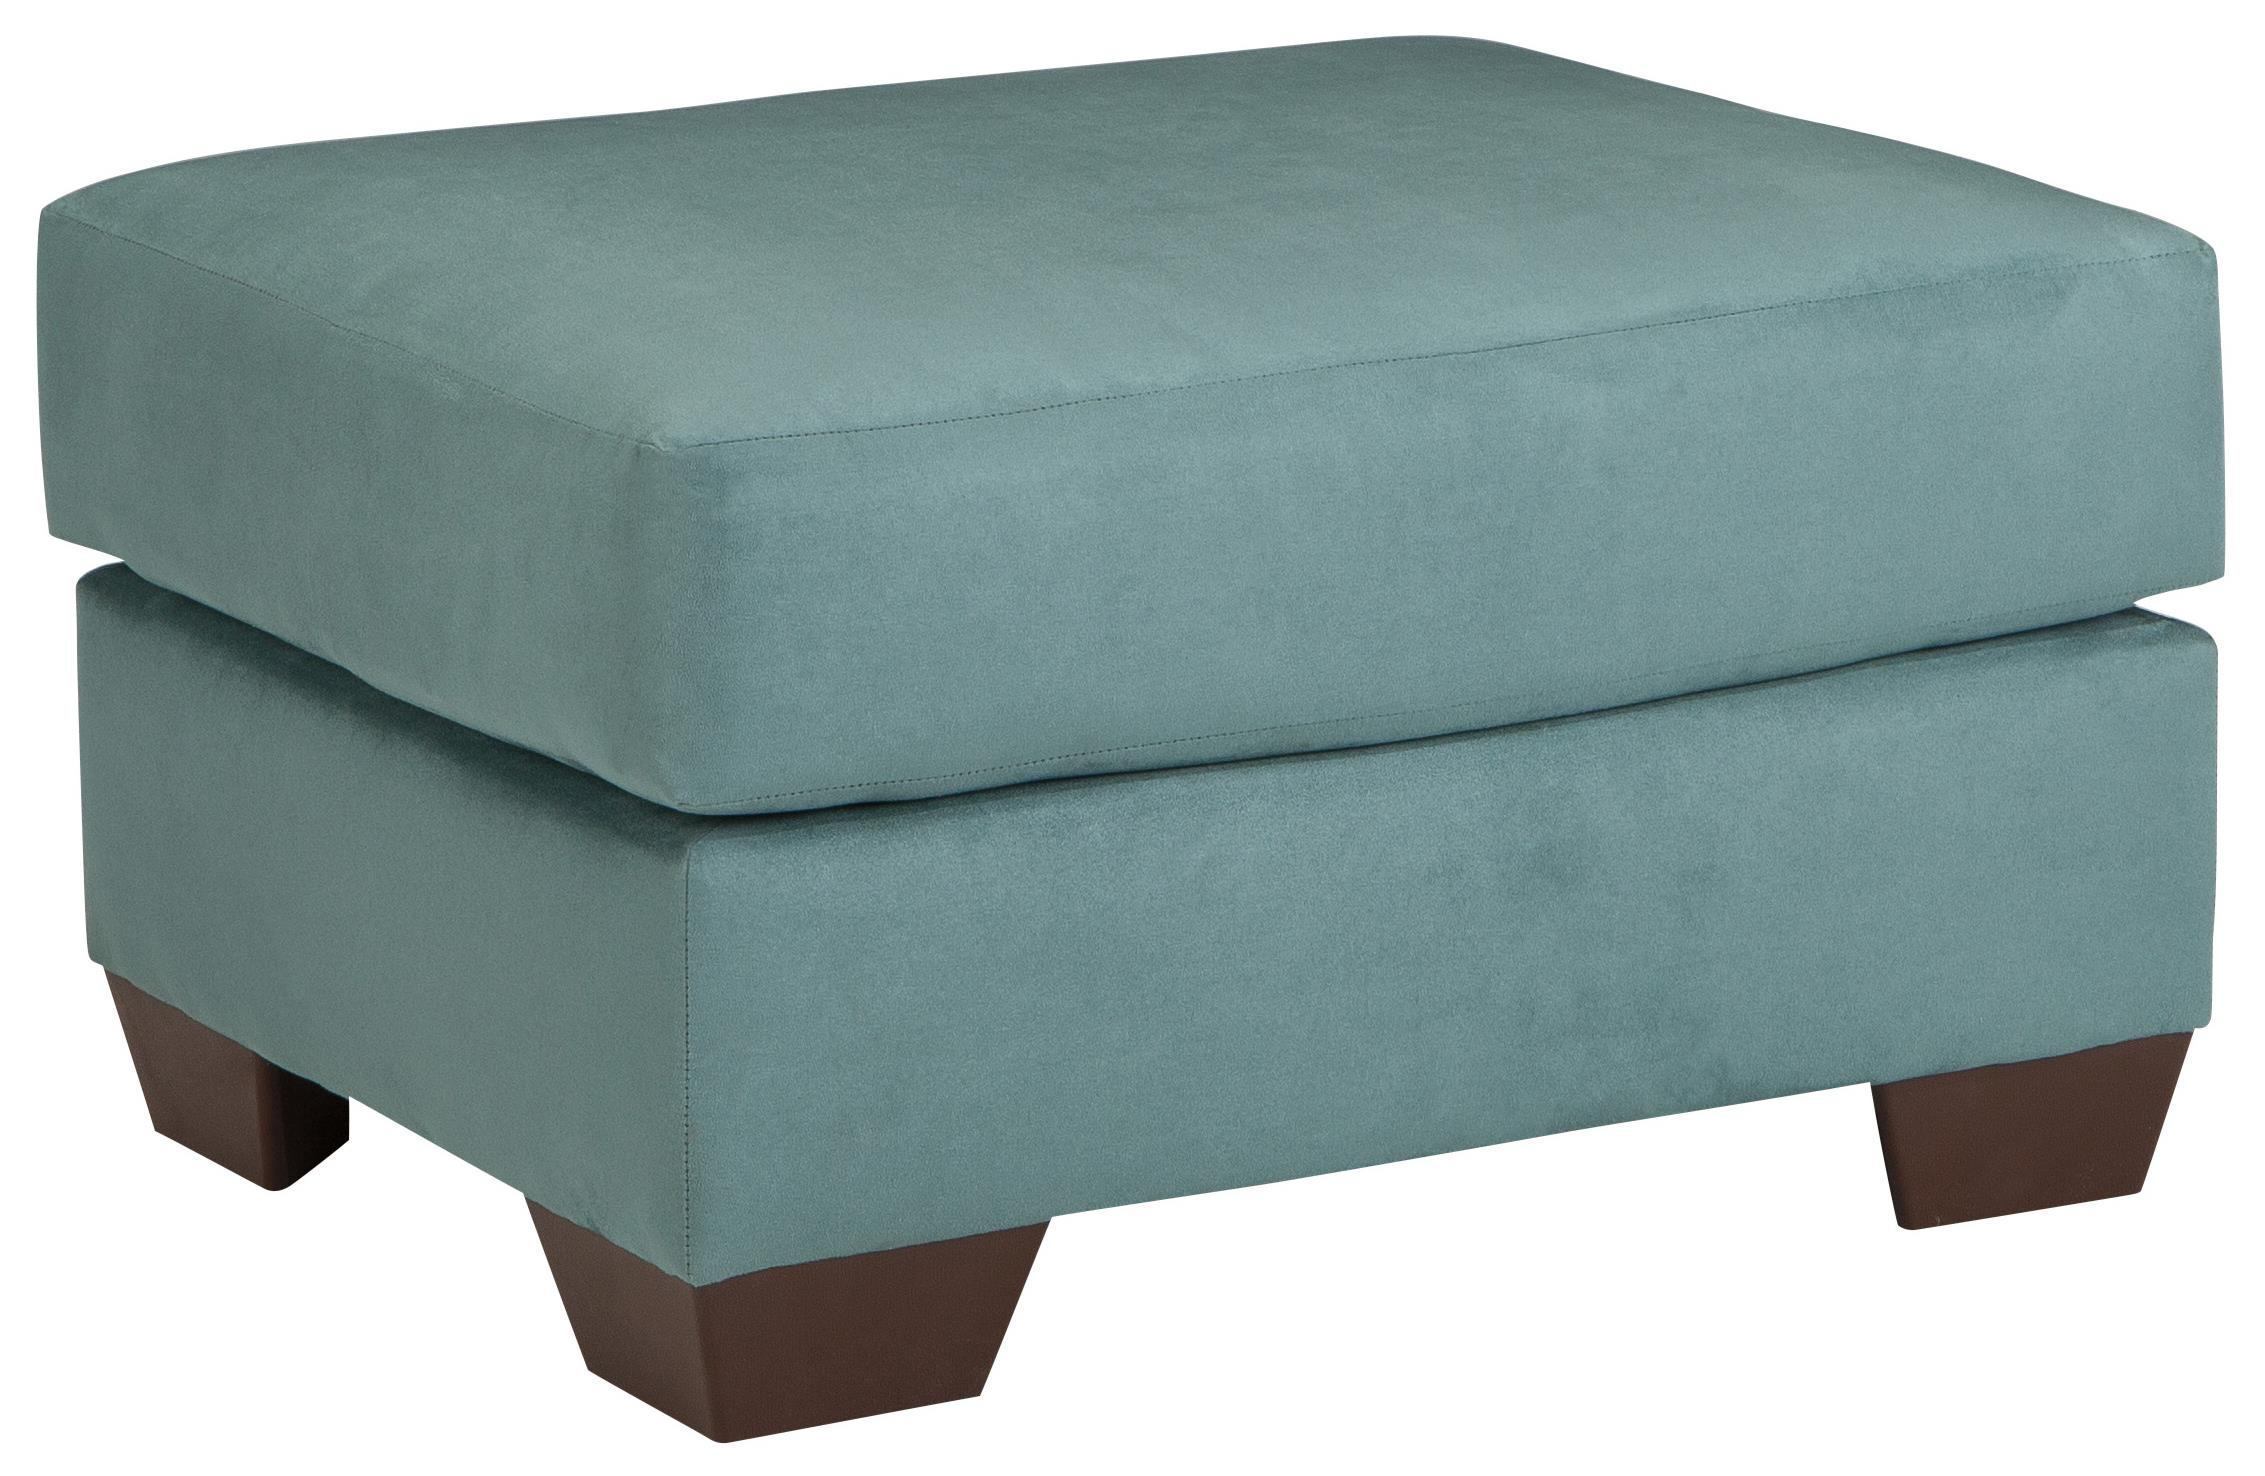 Darcy - Sky Ottoman by Ashley (Signature Design) at Johnny Janosik